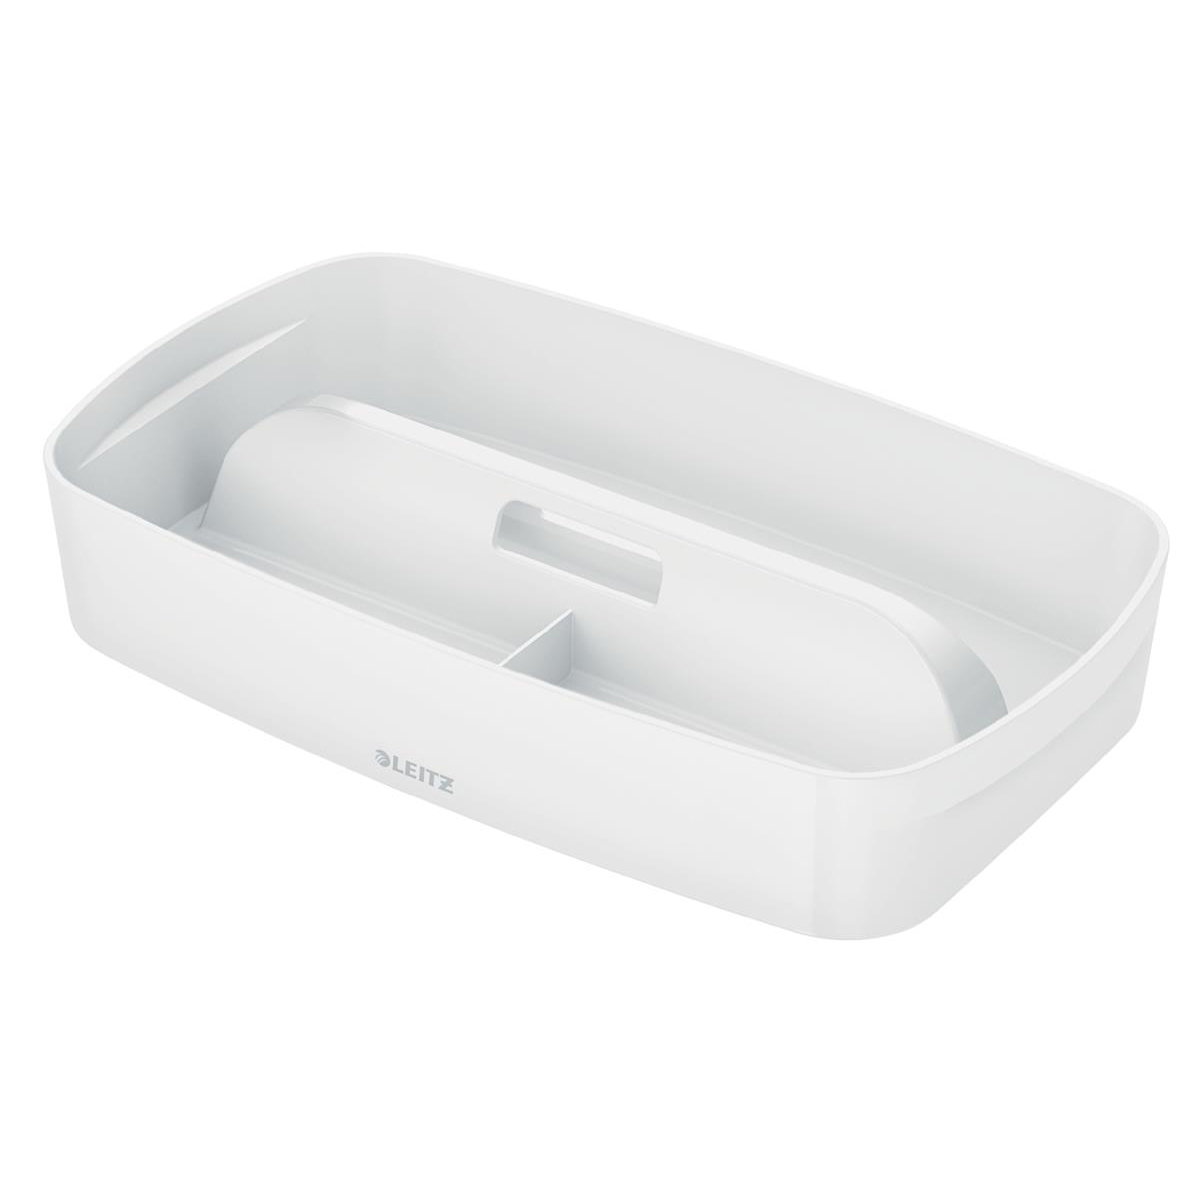 Image for Leitz MyBox Organiser Tray with Handle Plastic(ABS) W307xD181xH56mm White Ref 53230001